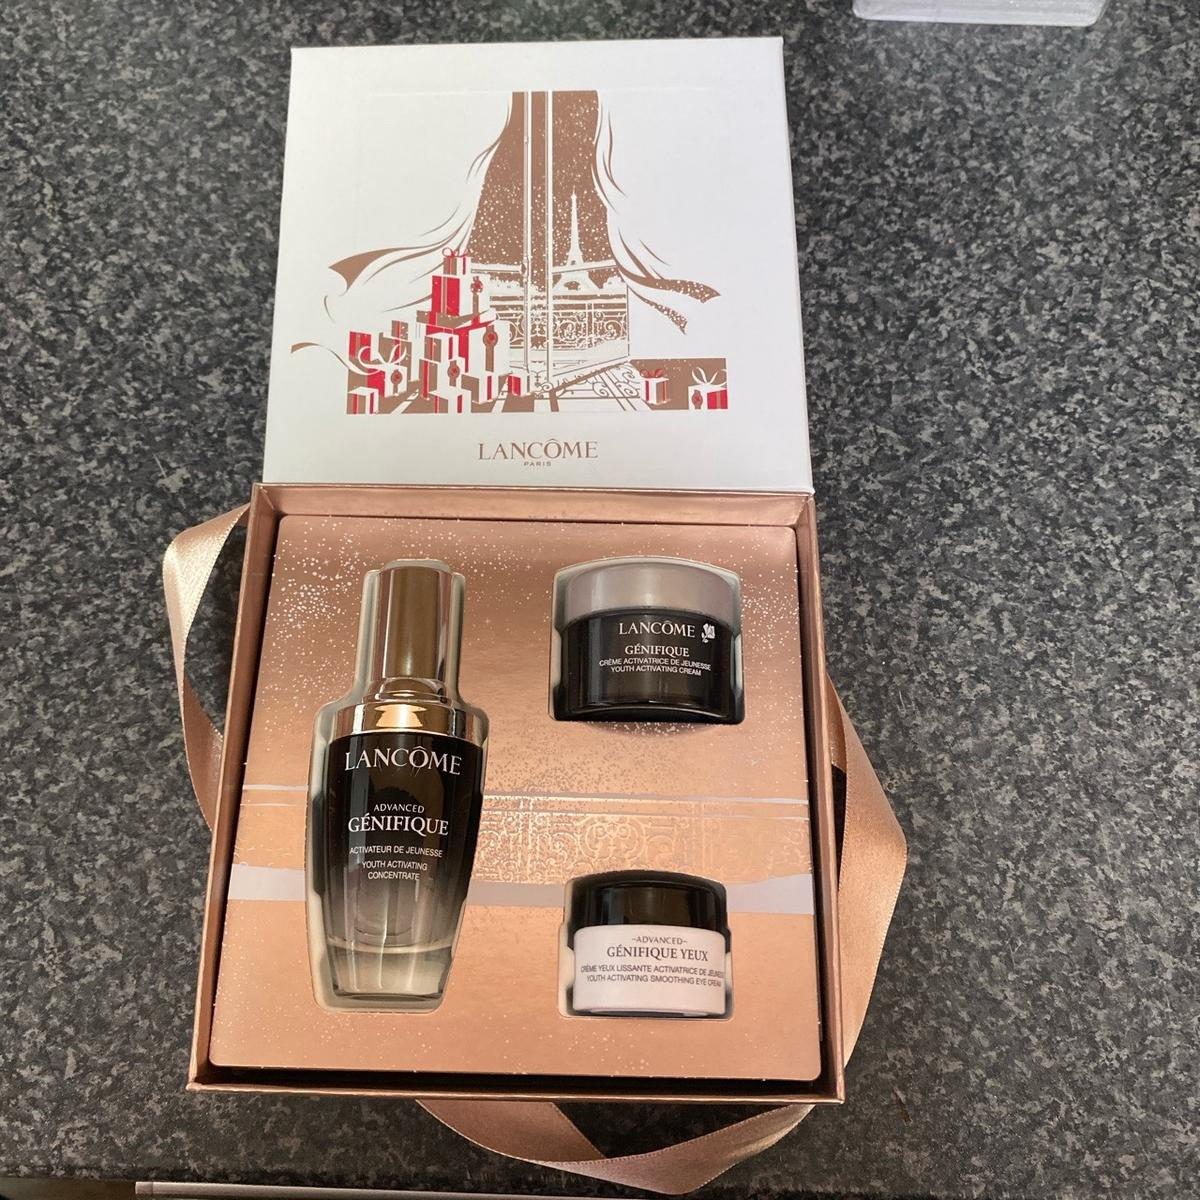 Brand new Lancôme youth activating gift set Lancôme youth activating concentrate 30ml Lancôme youth activating cream 15ml Lancôme youth activating soothing eye cream 5ml No time wasters